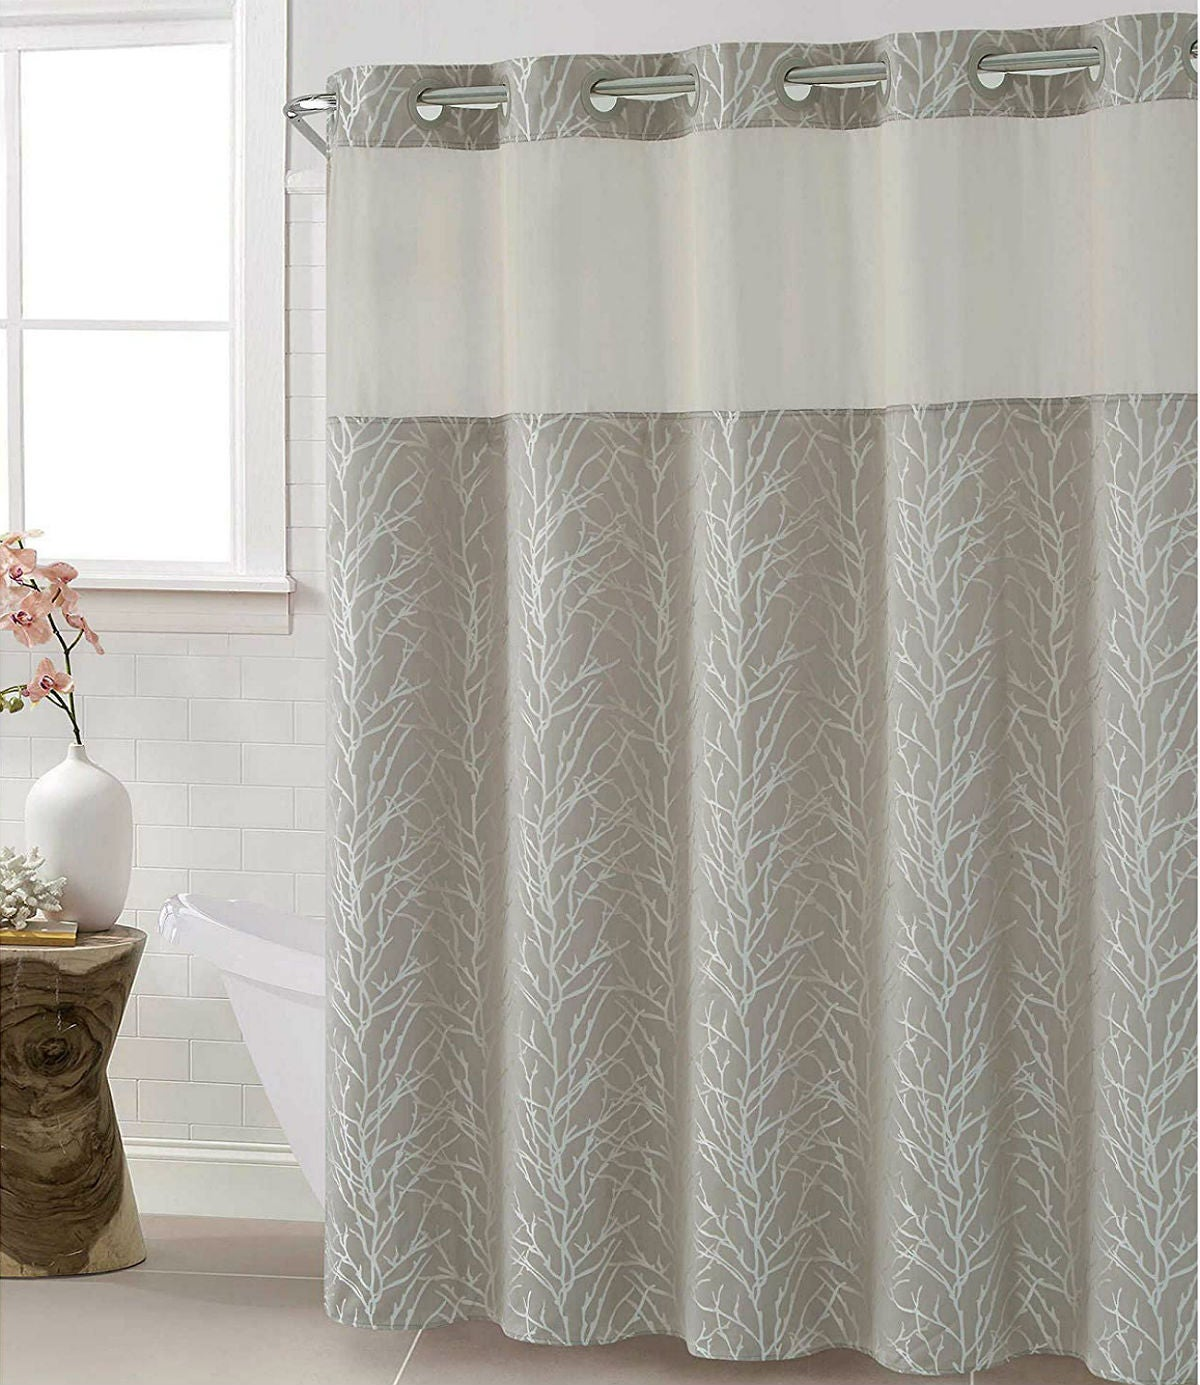 The Best Shower Curtains: Hookless